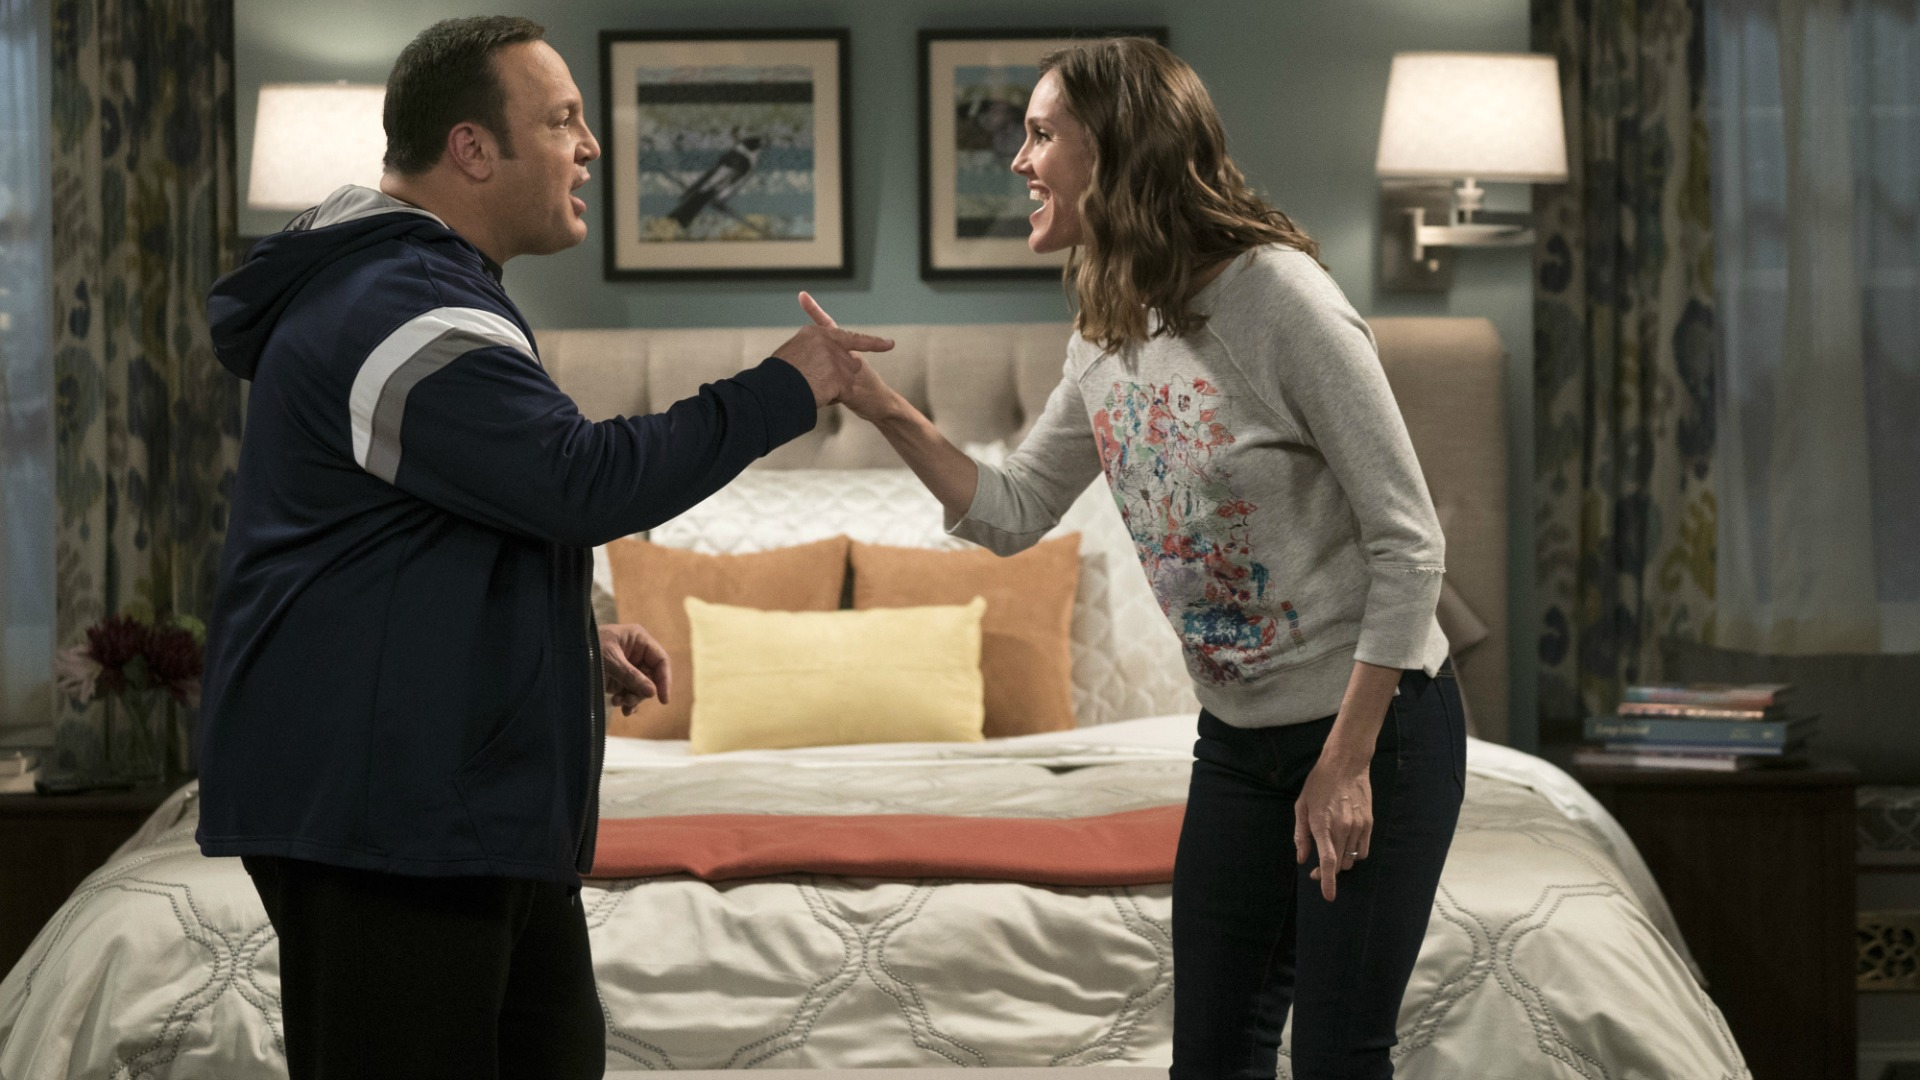 Kevin and Donna discuss the situation in their bedroom.